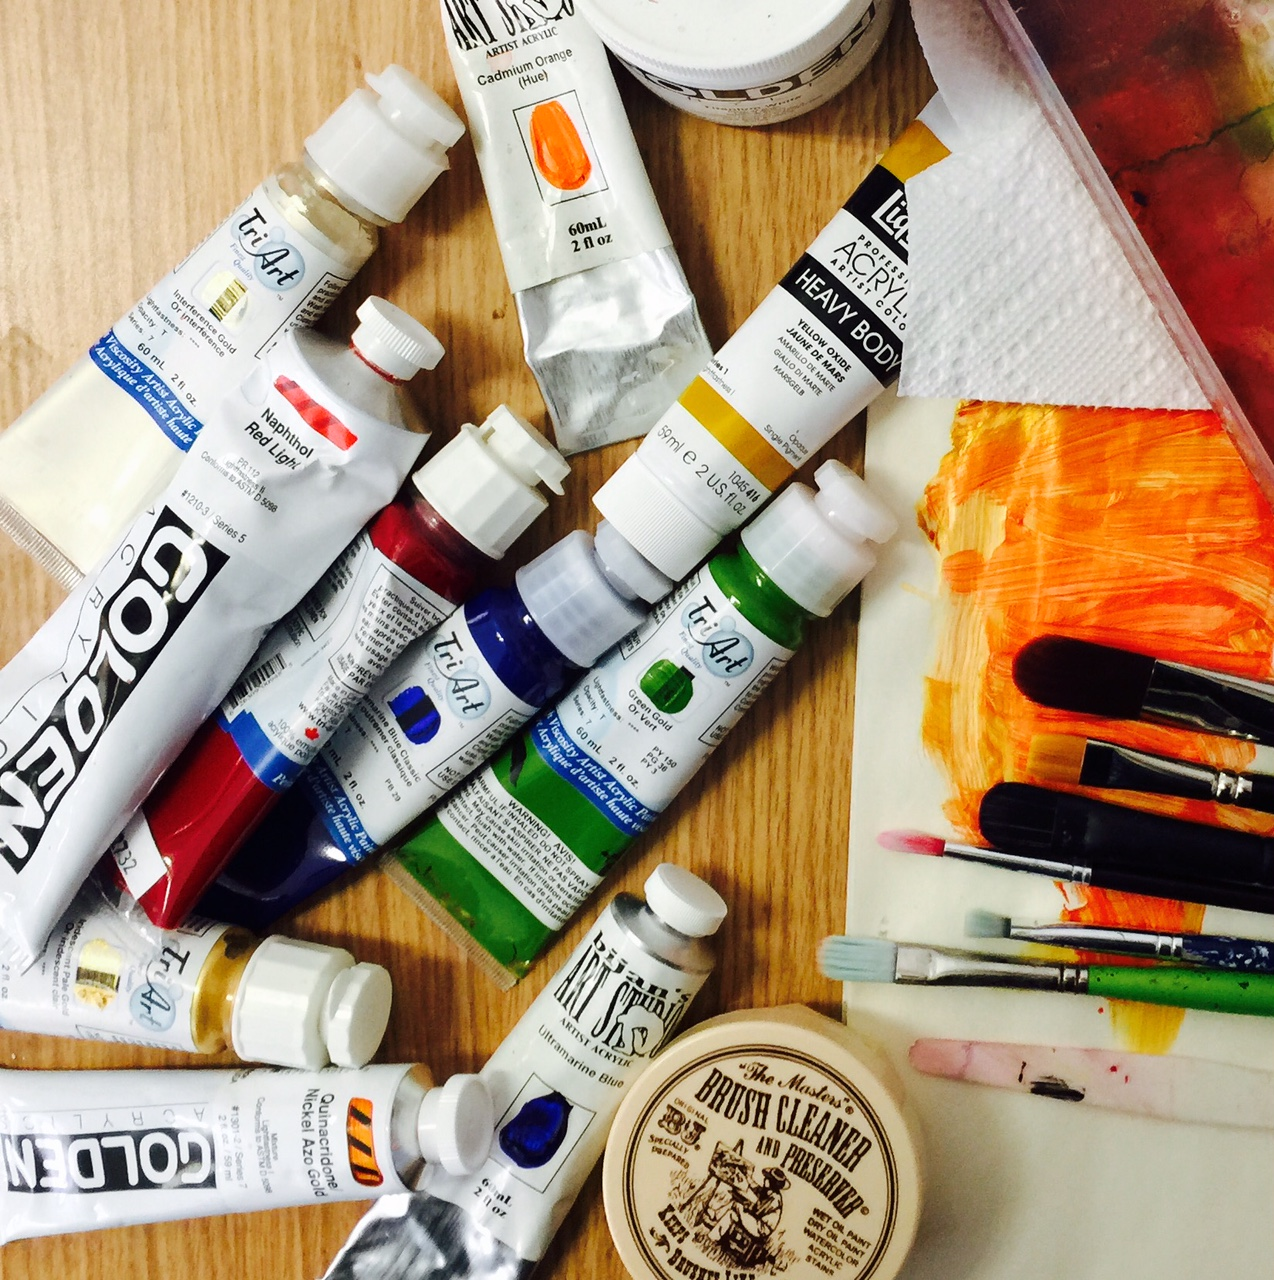 photo of acrylic paints, brushes and tools